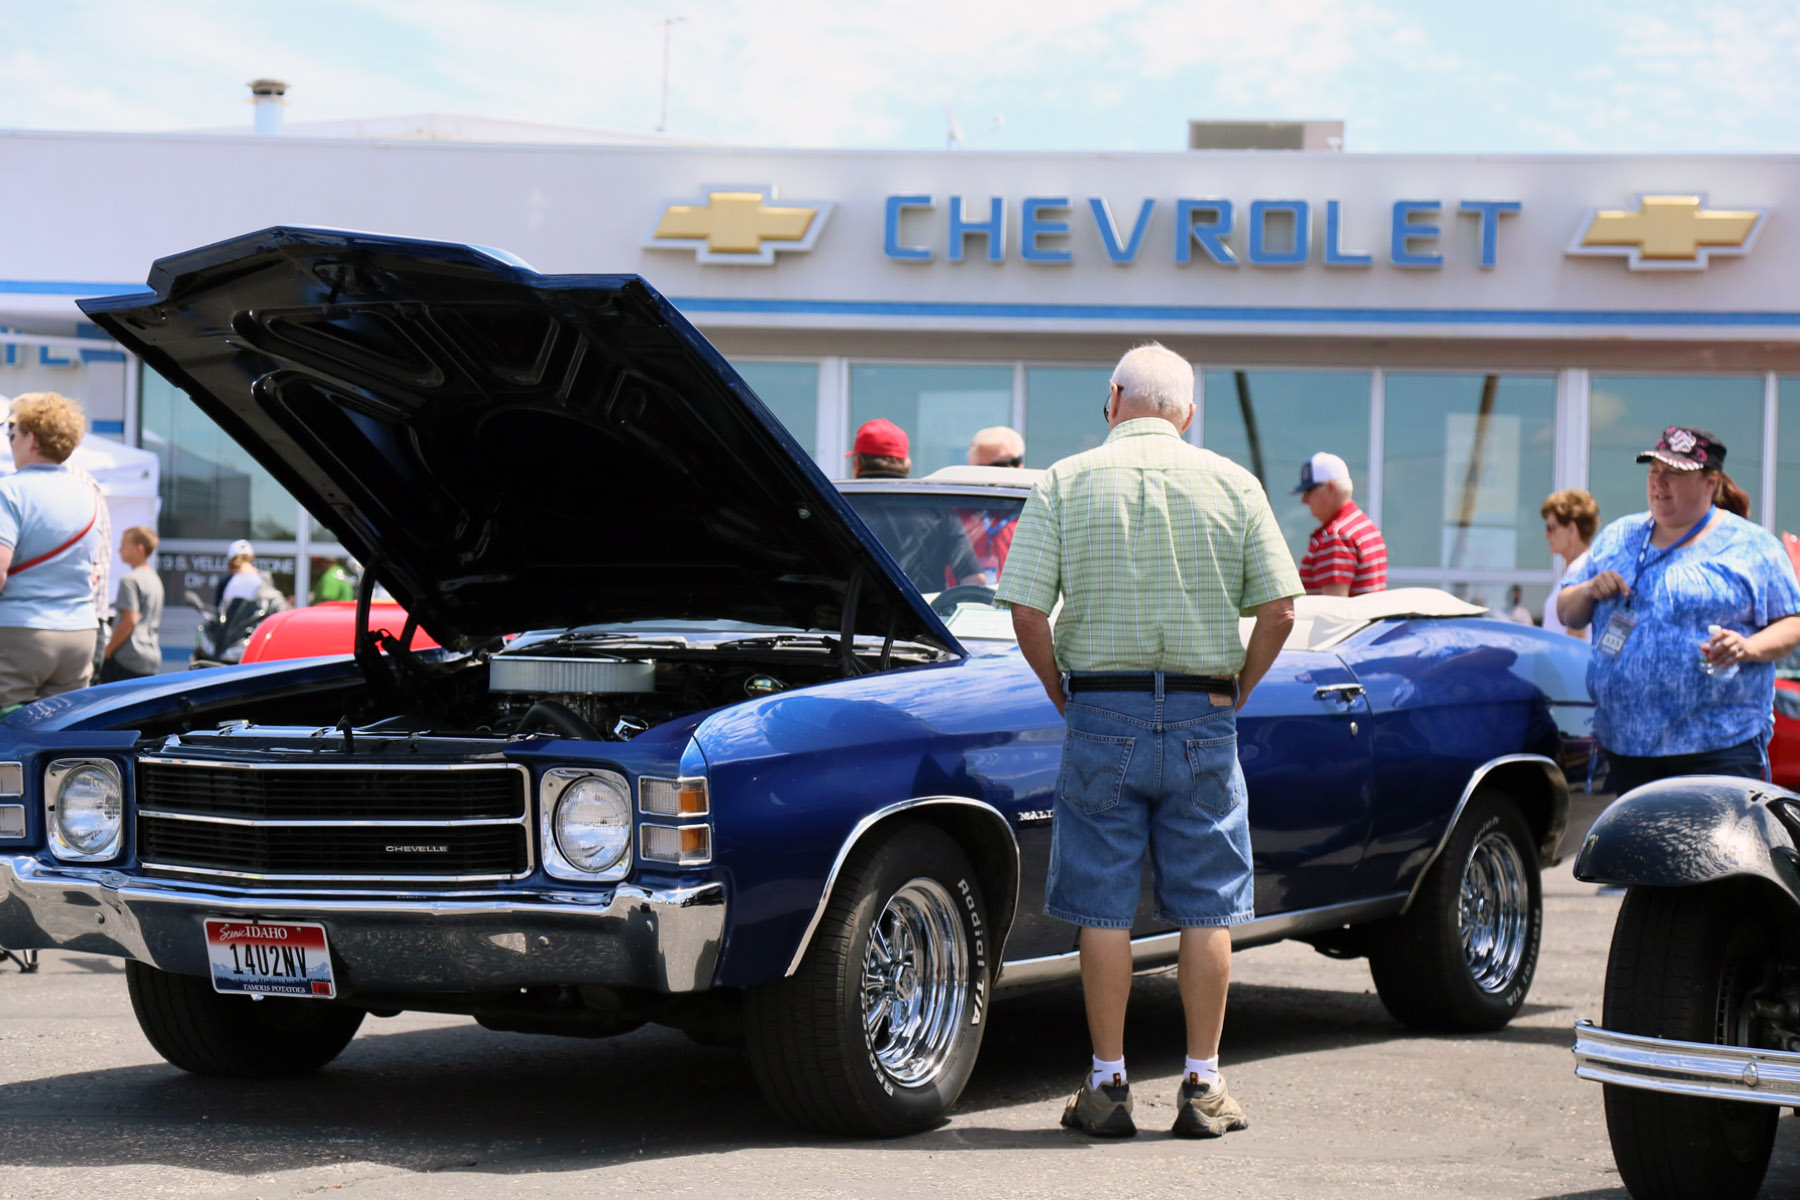 Taylor Chevrolet to host car show and concert at Madison fairgrounds